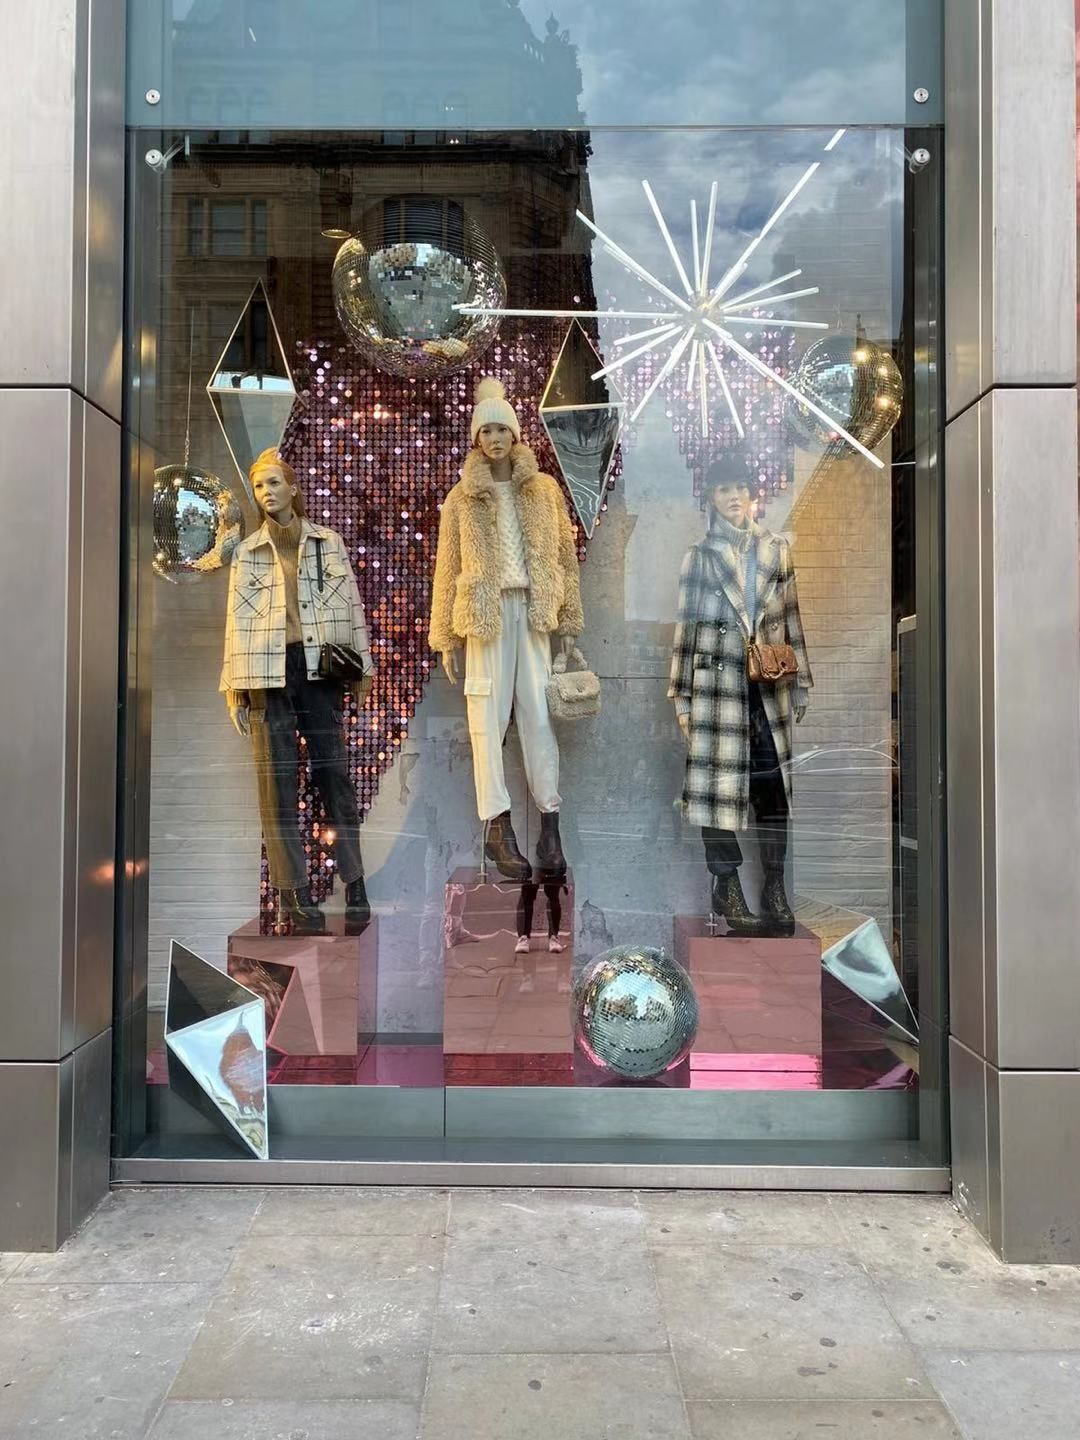 Christmas Windows 2020 retail Christmas window displays in 2020 | Window display